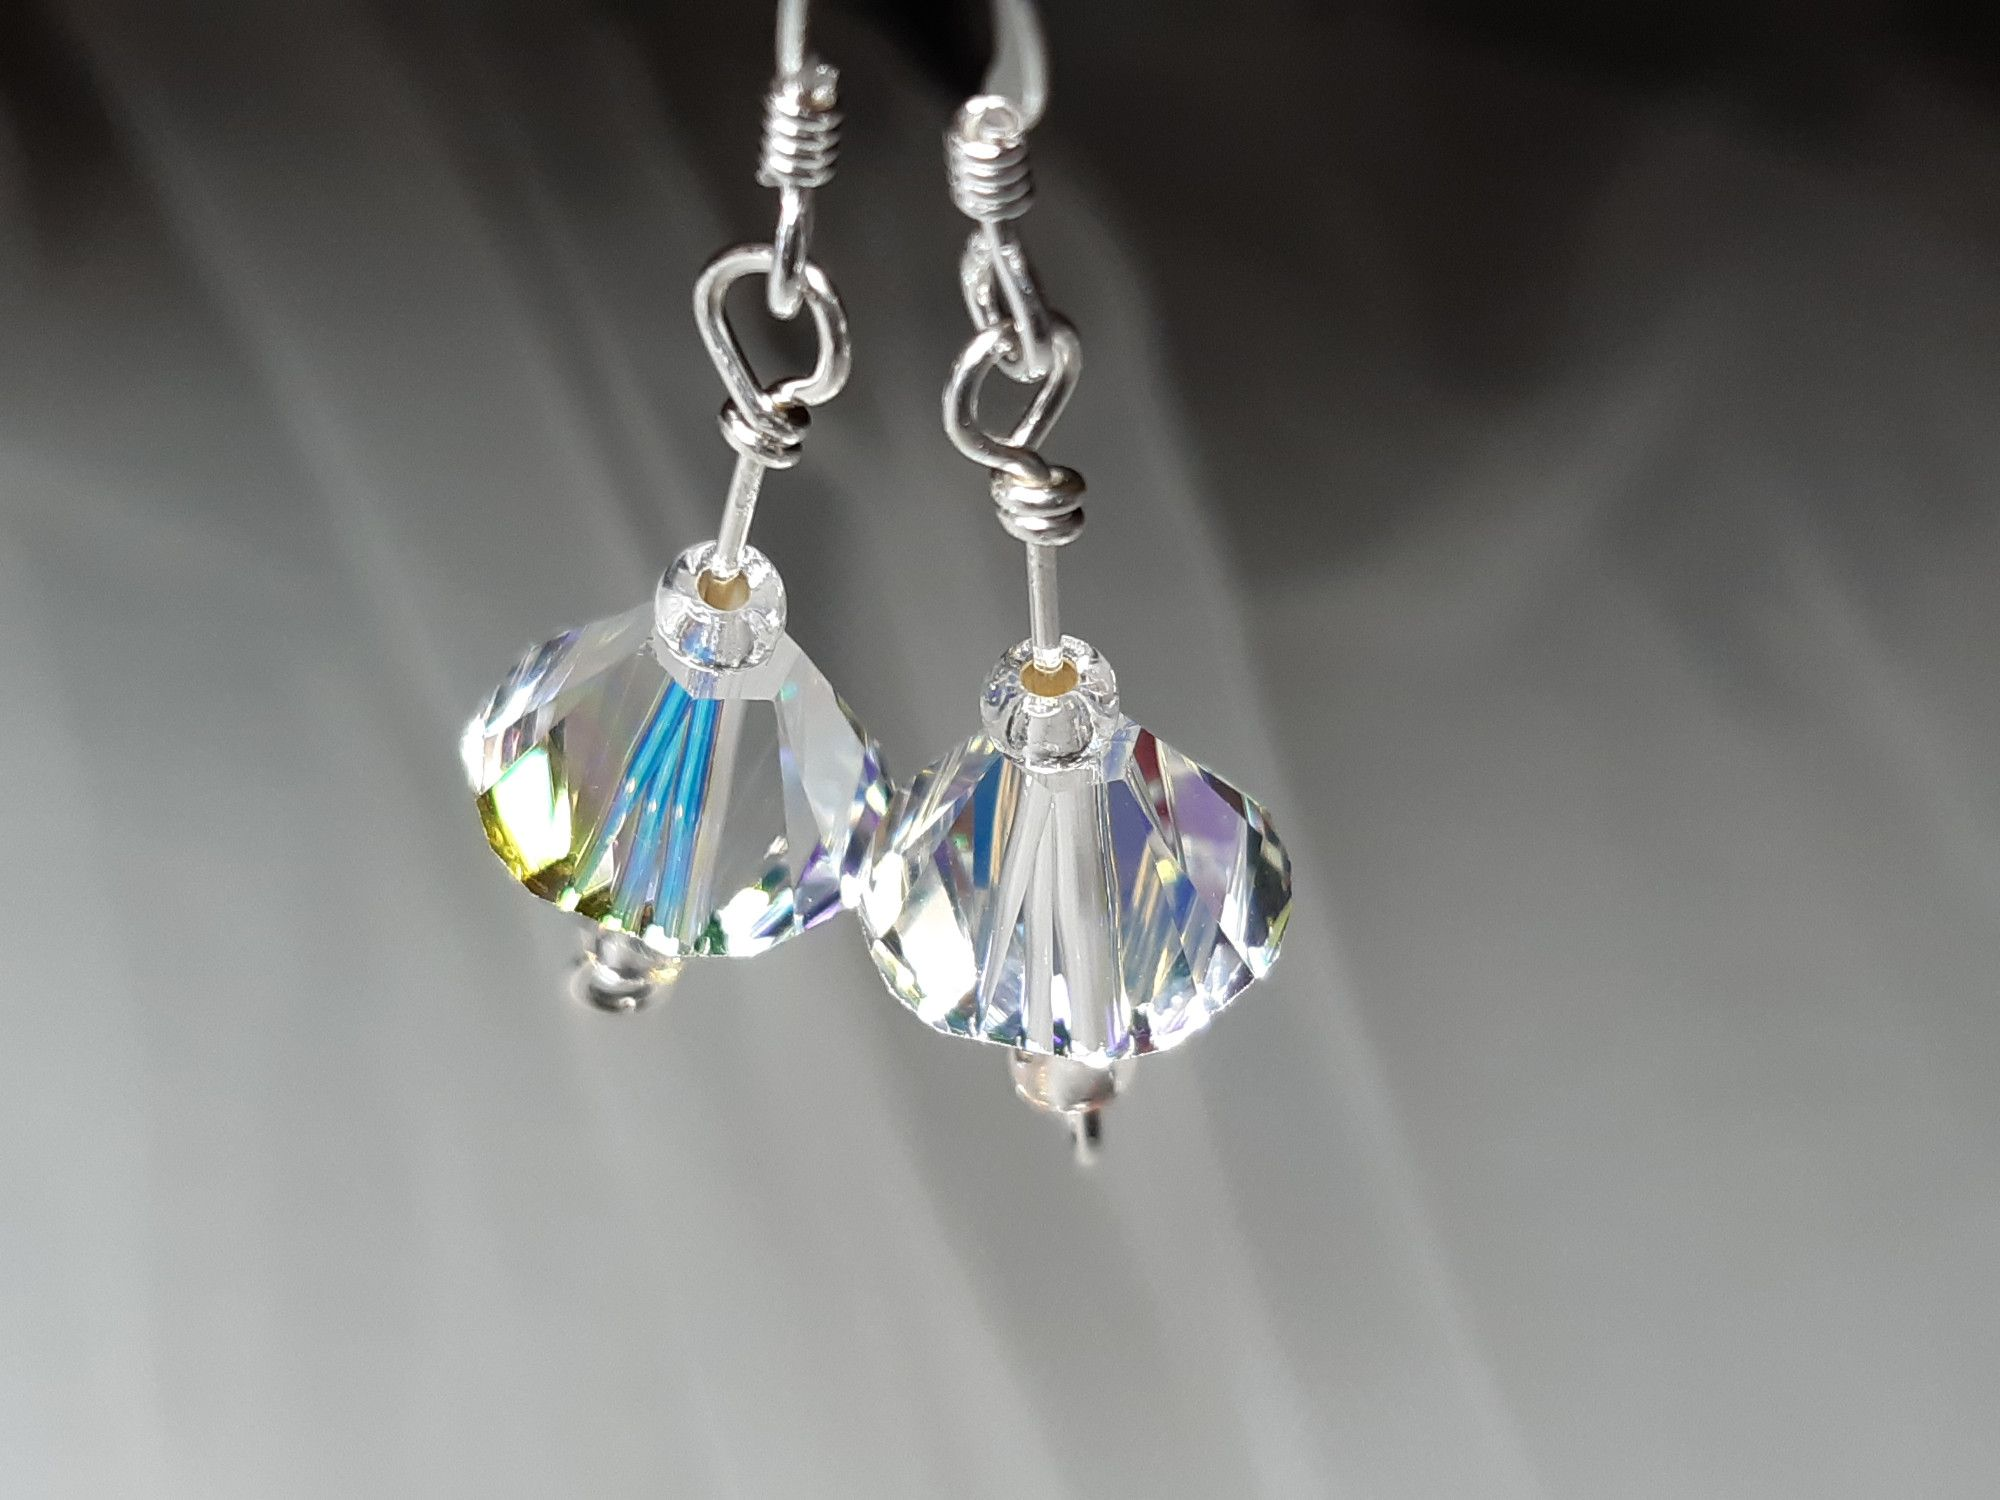 Occasion-wedding-swarovski crystal+sterling silver earrings-5.jpg